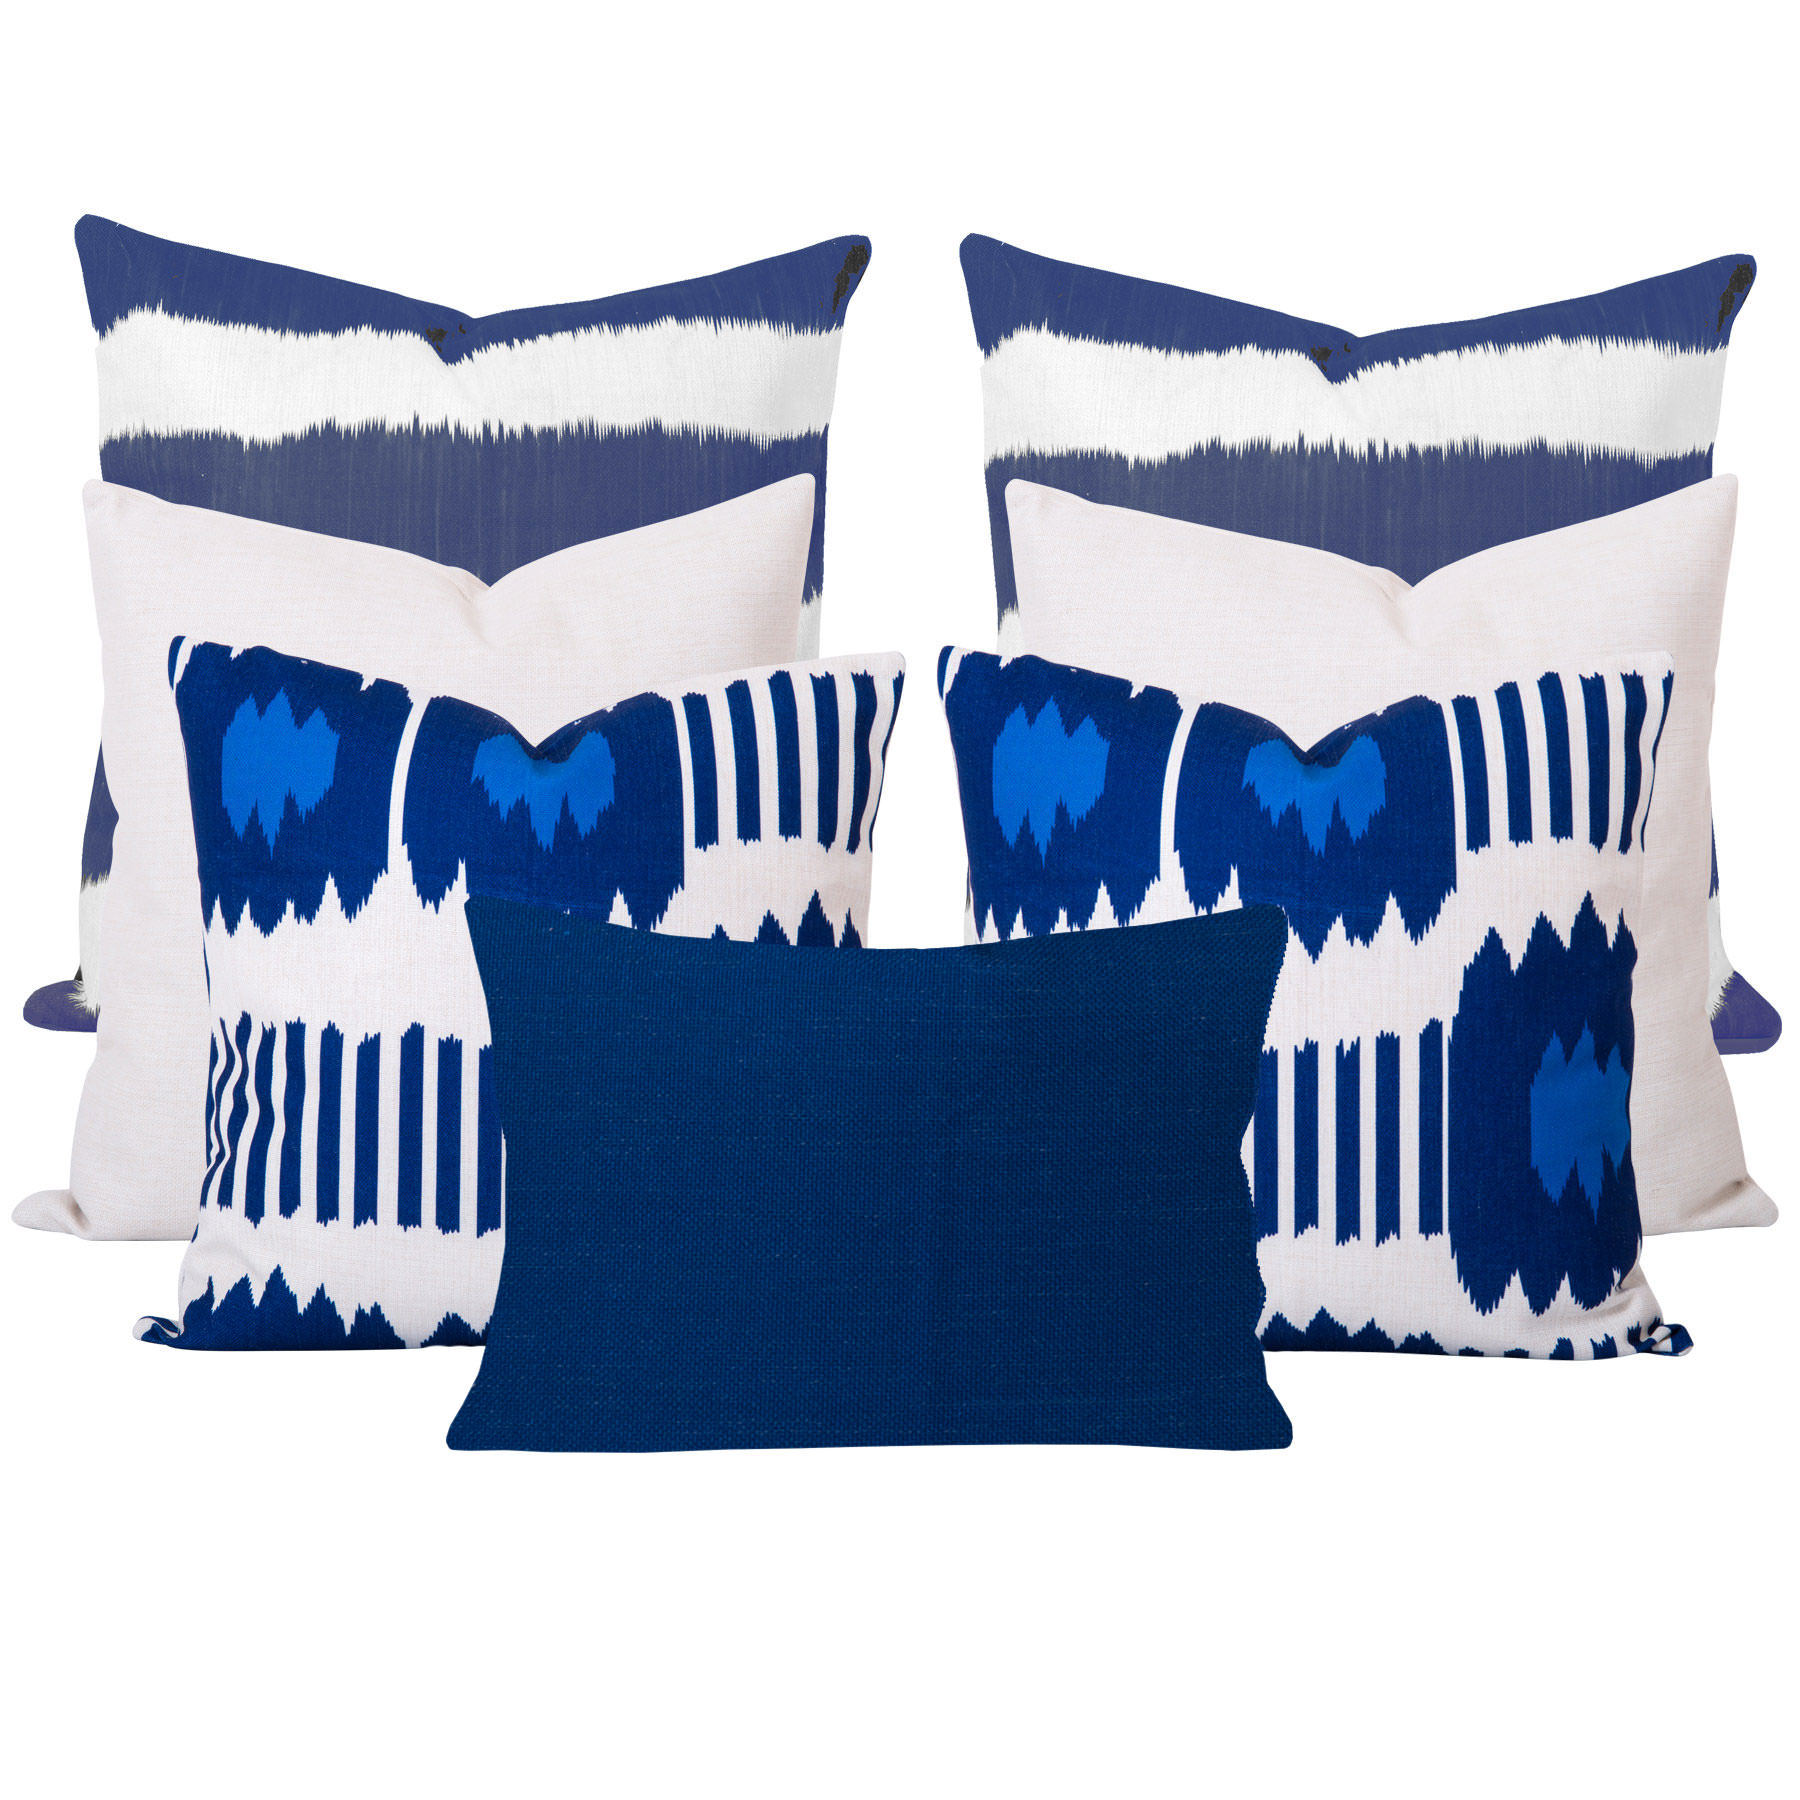 Bayou-Blue-Ikat-7-Cushion-Set